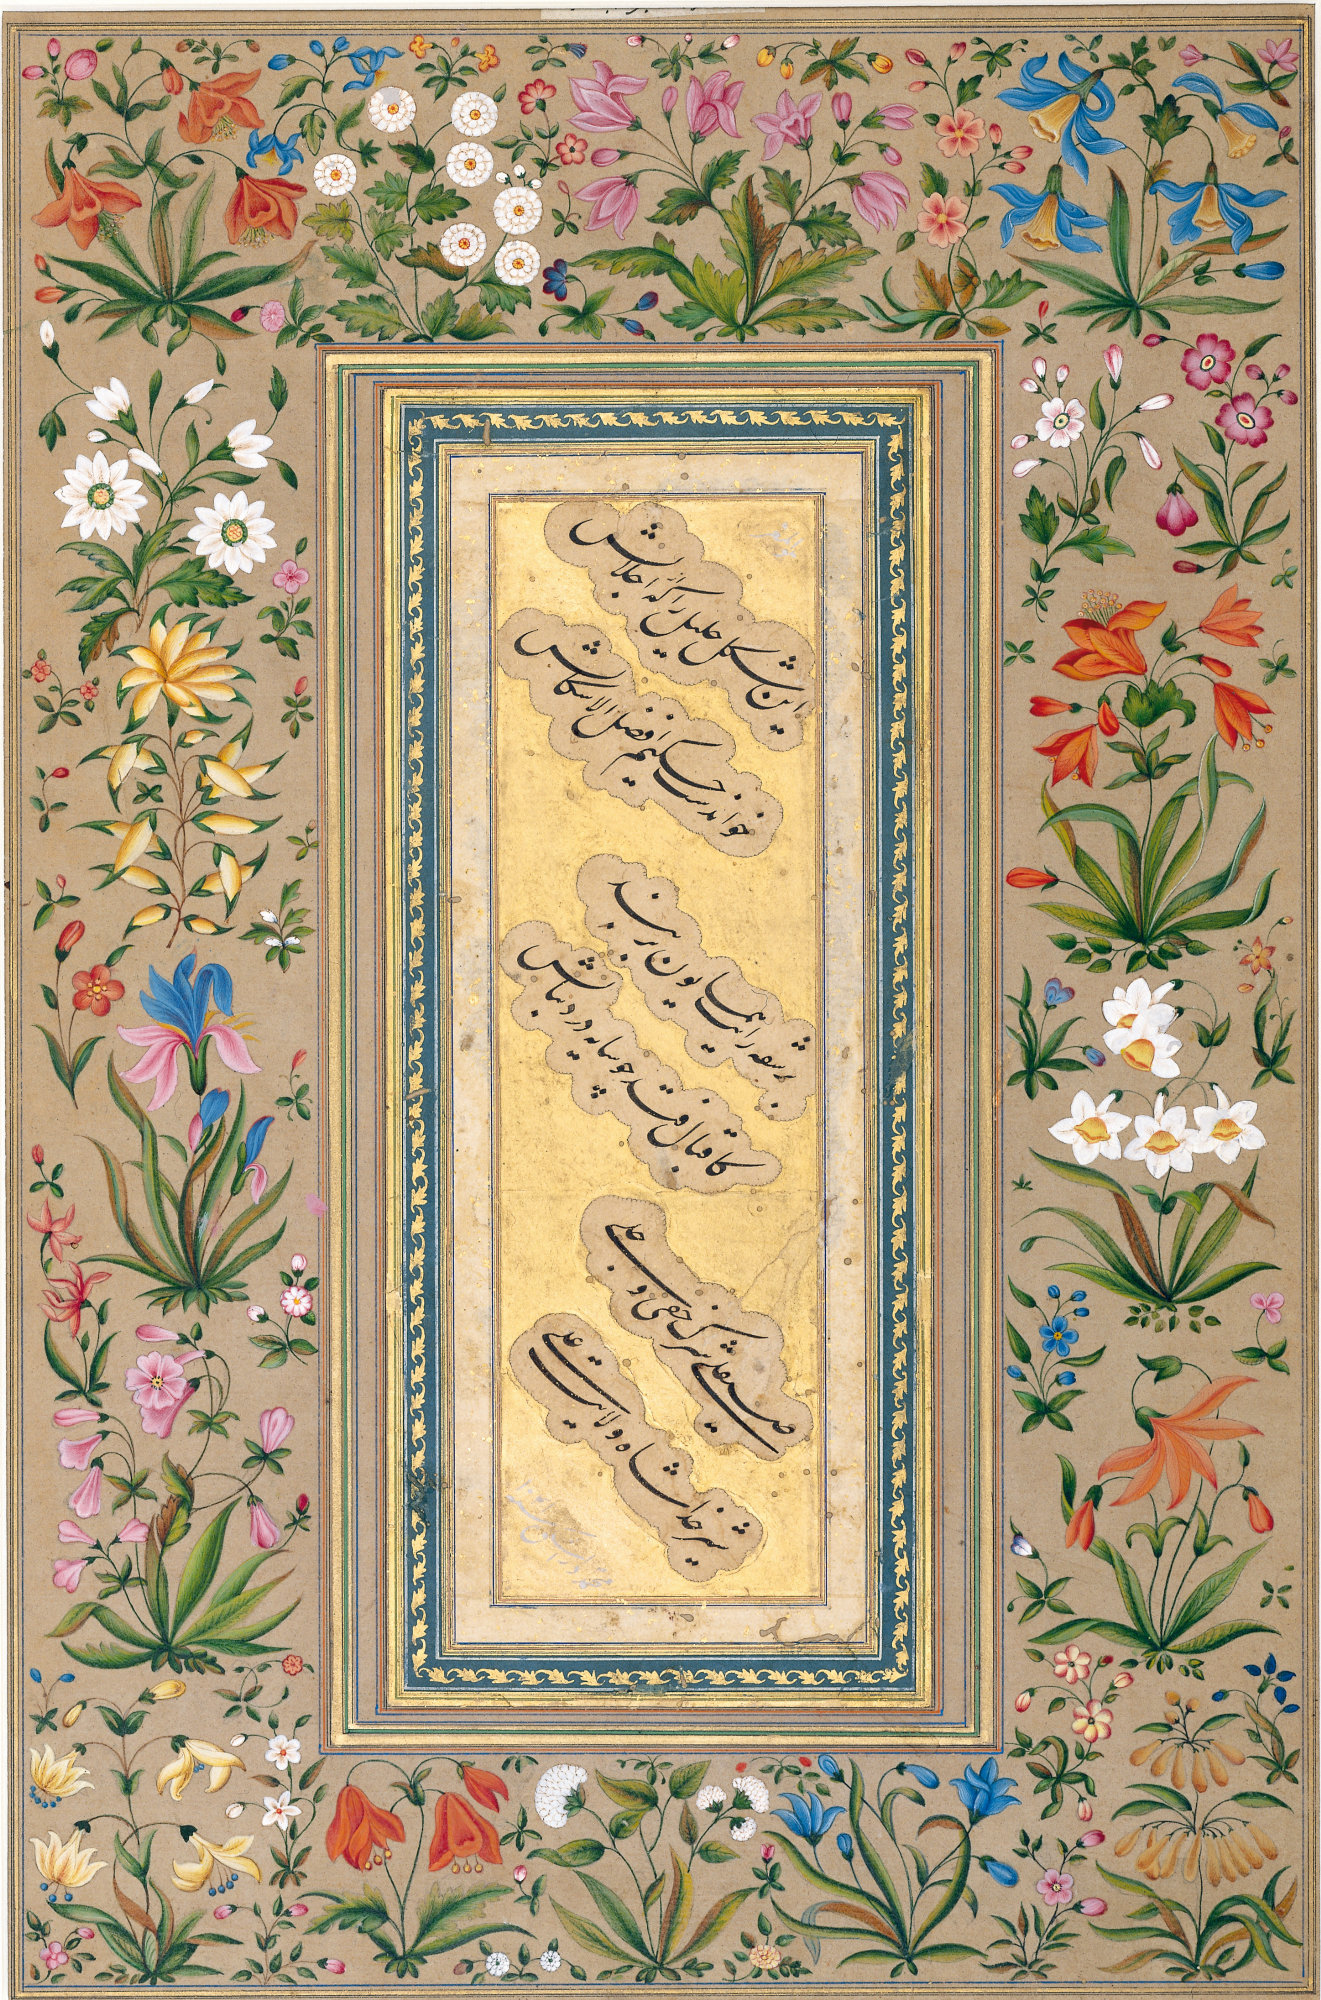 Calligraphy by Dara Shikoh